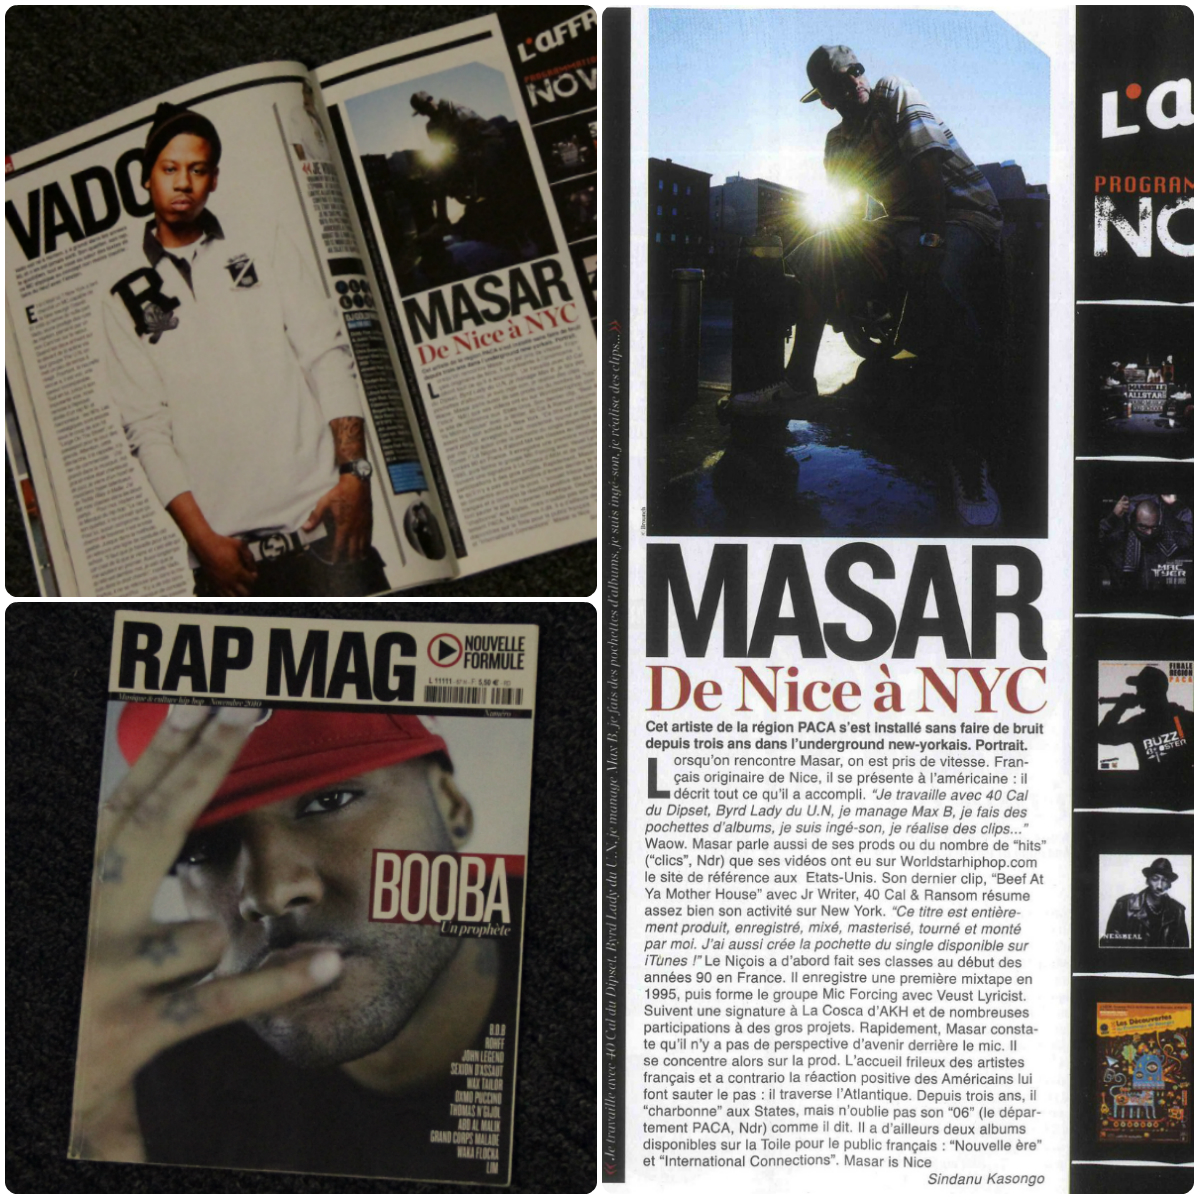 Masar on Rap Mag (Biggest Hip Hop Magazine in Europe)